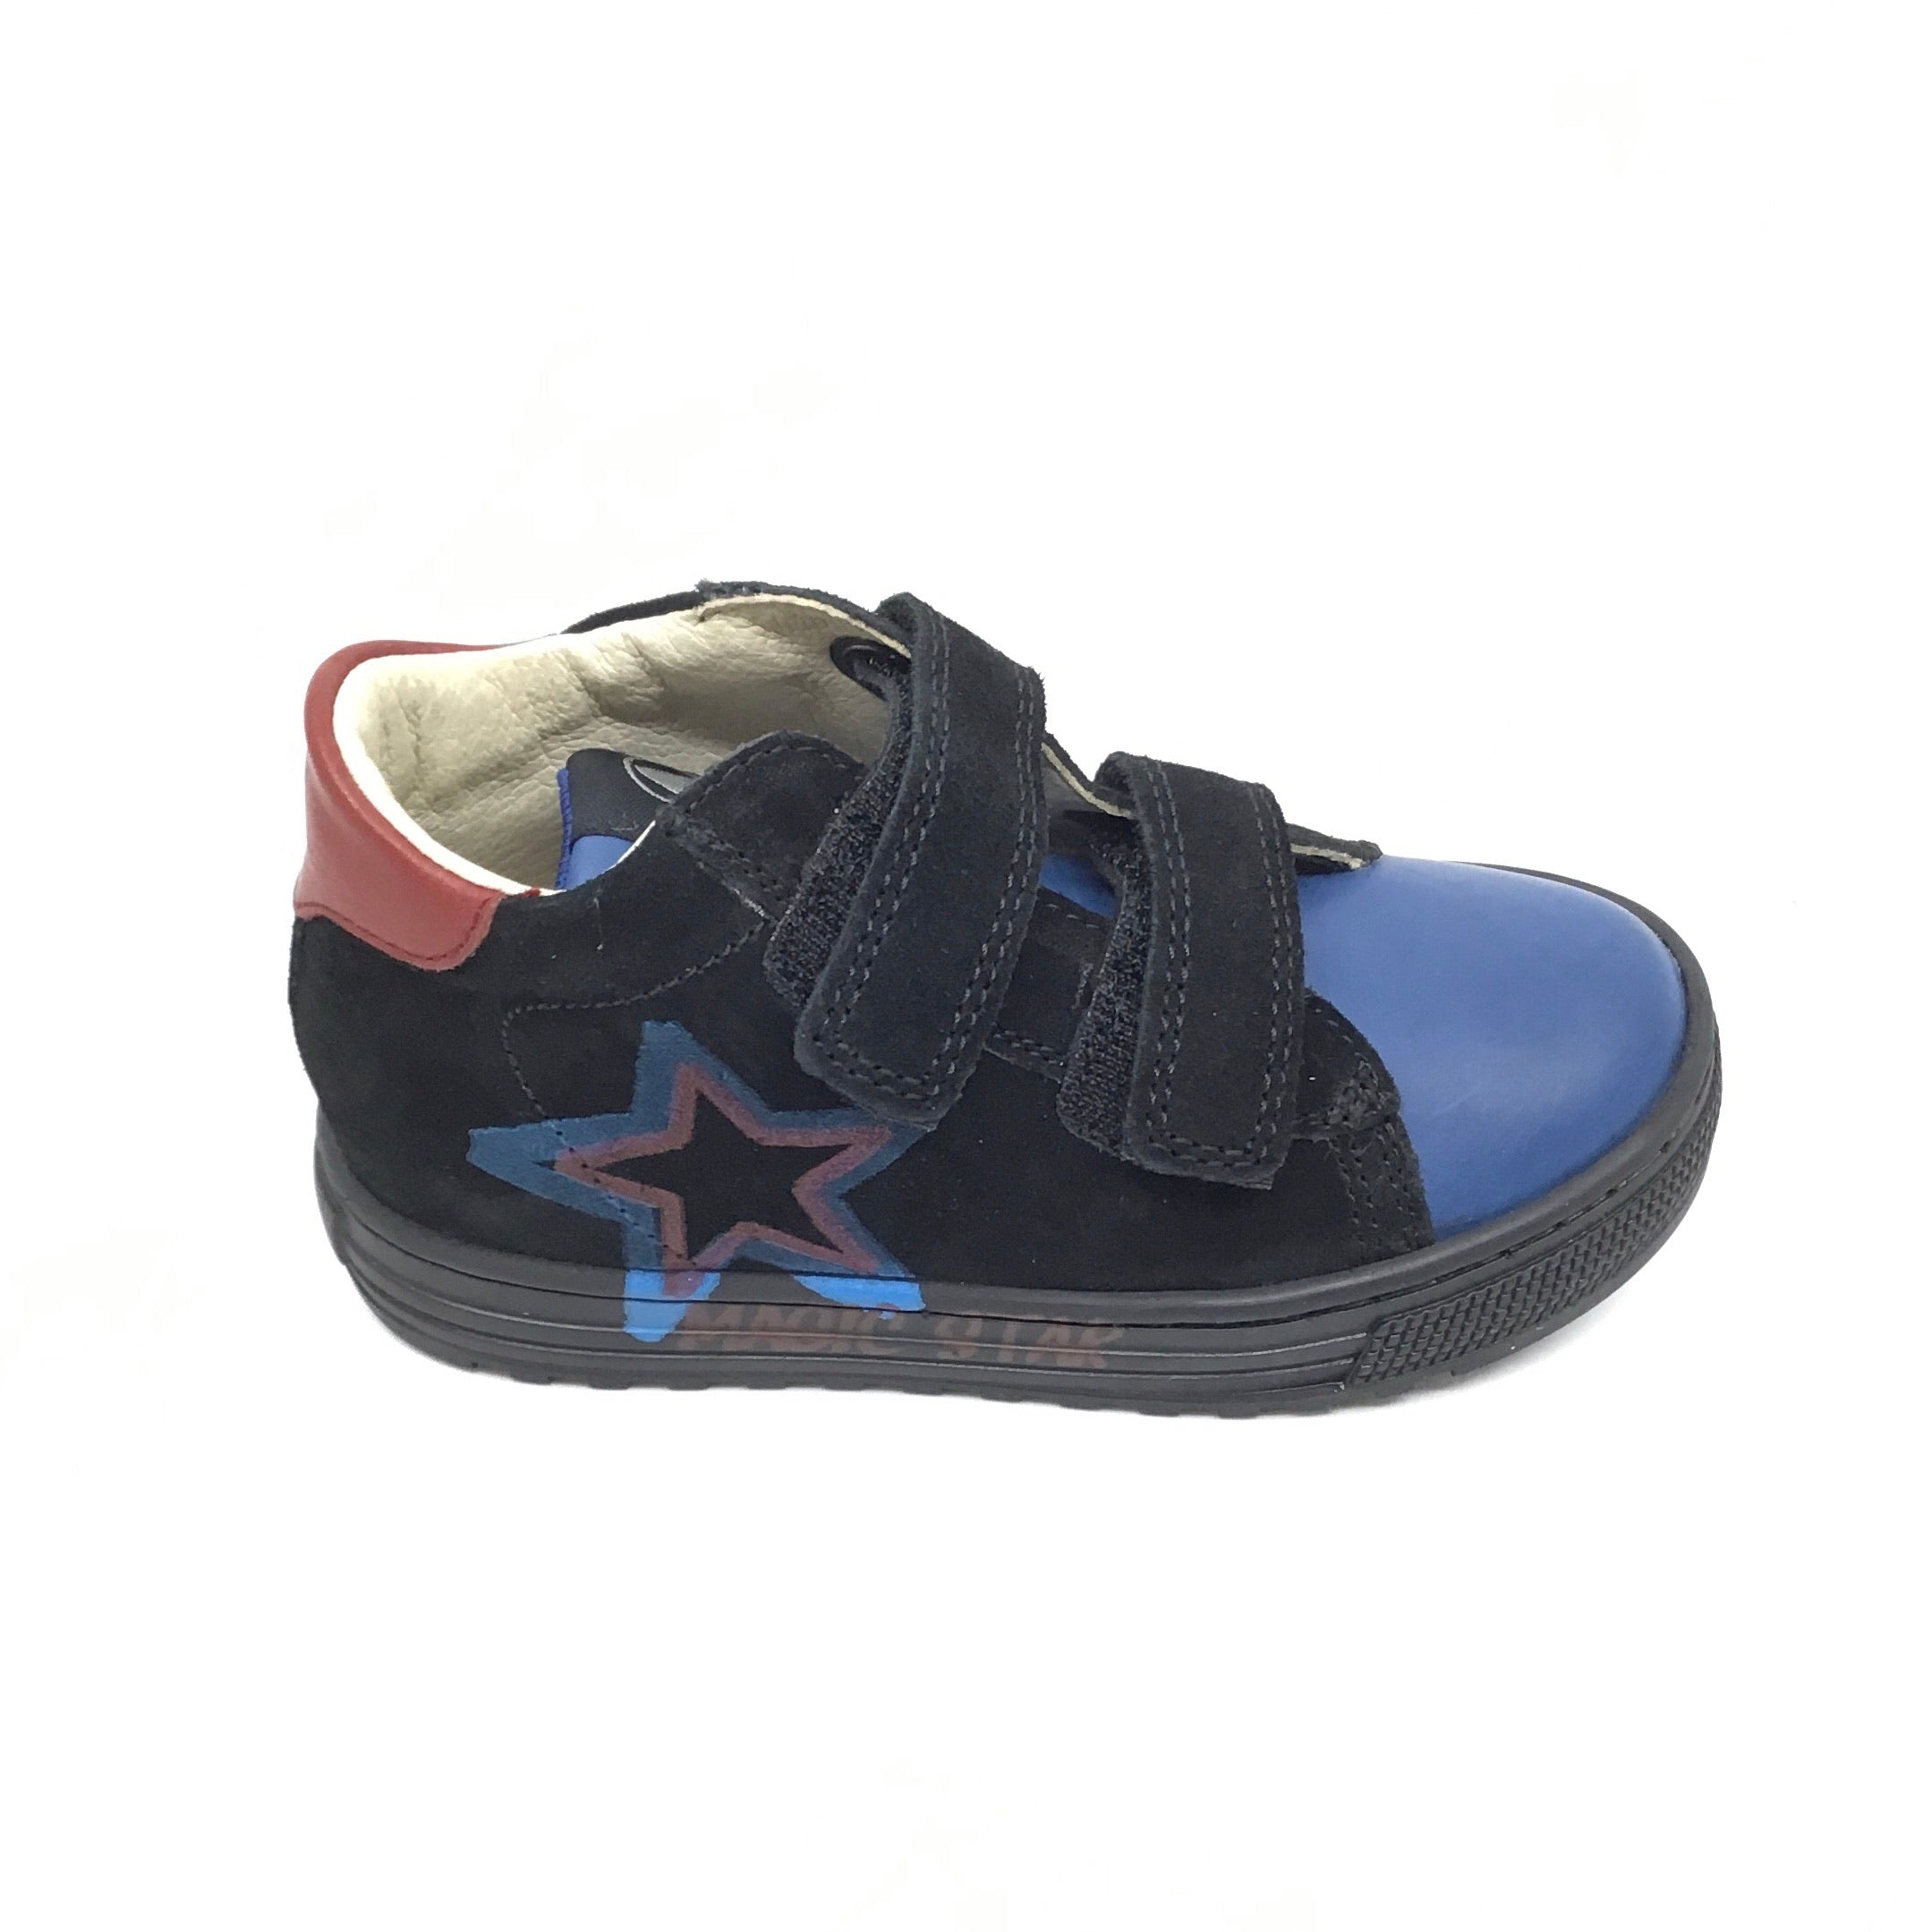 Naturino Black Sneaker with Blue Star Trim